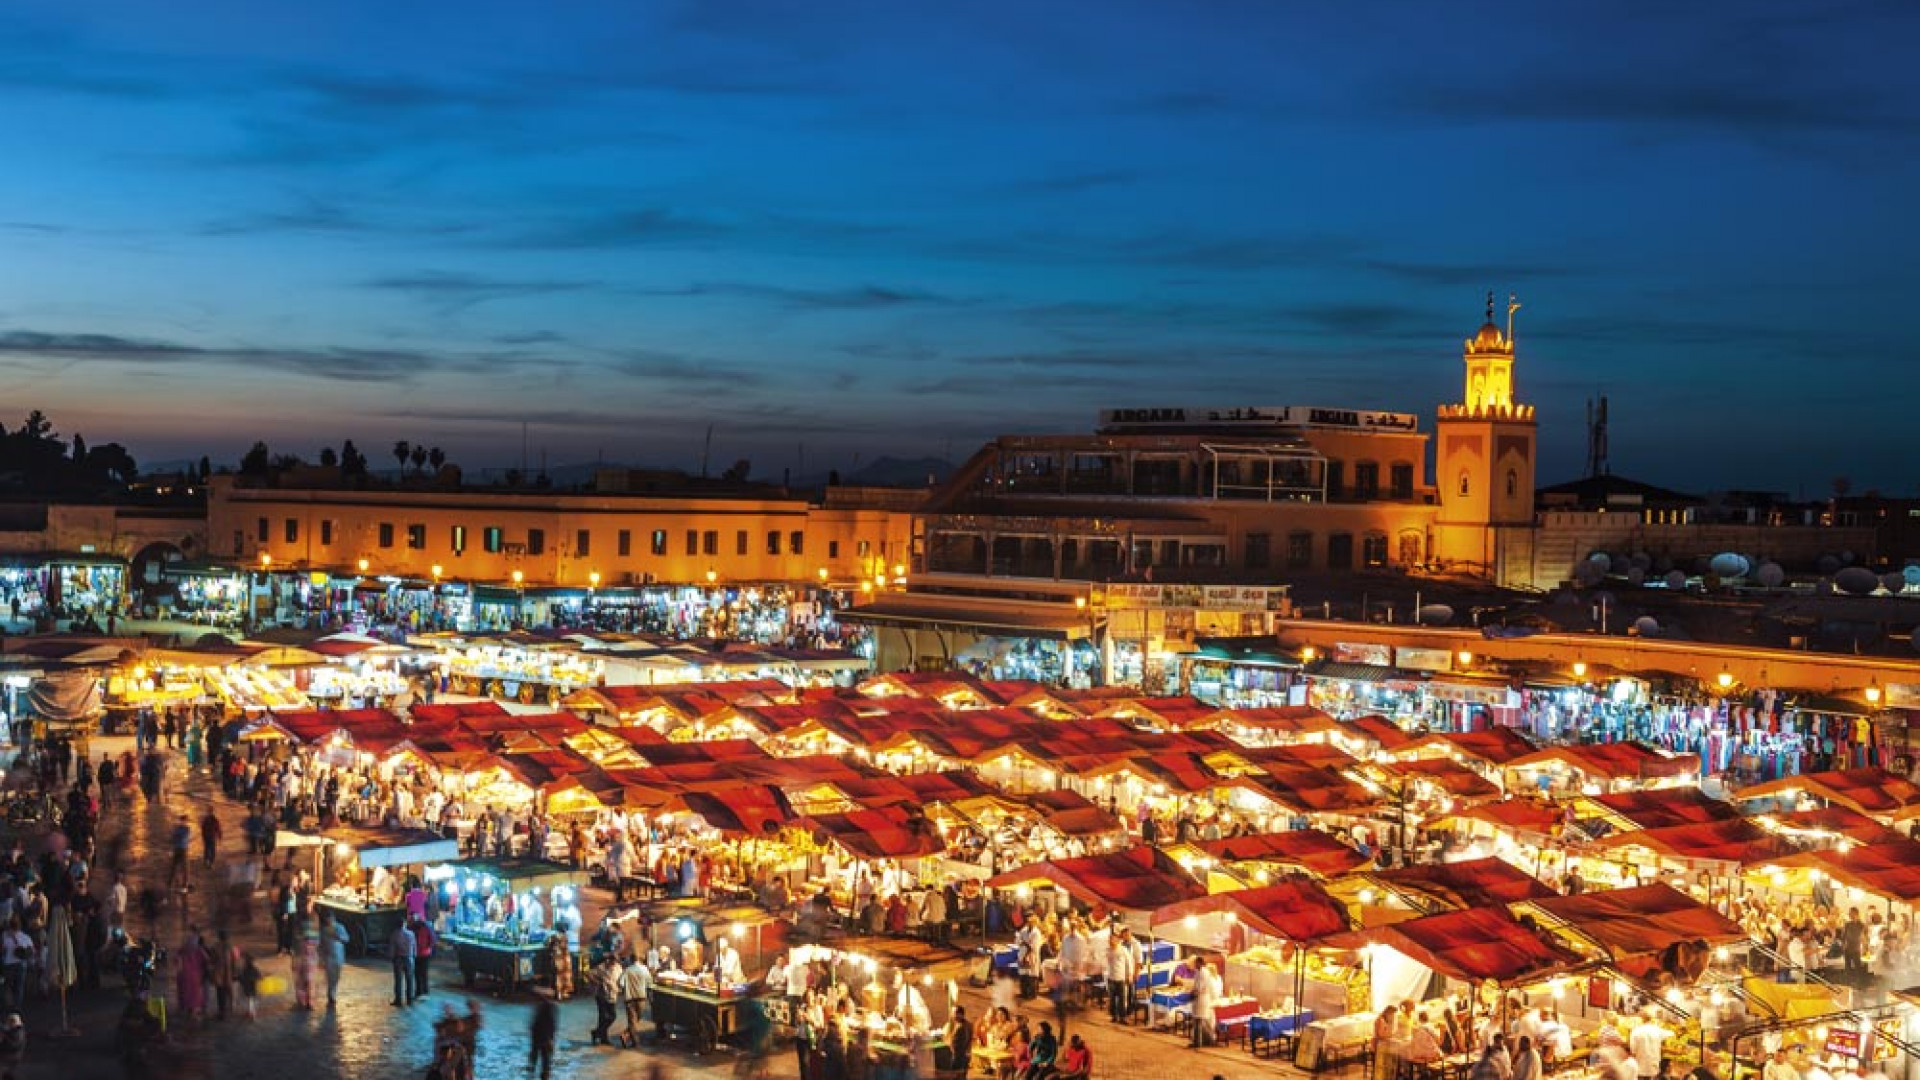 Evening at Djemaa El Fna Square with Koutoubia Mosque, Marrakech, Morocco